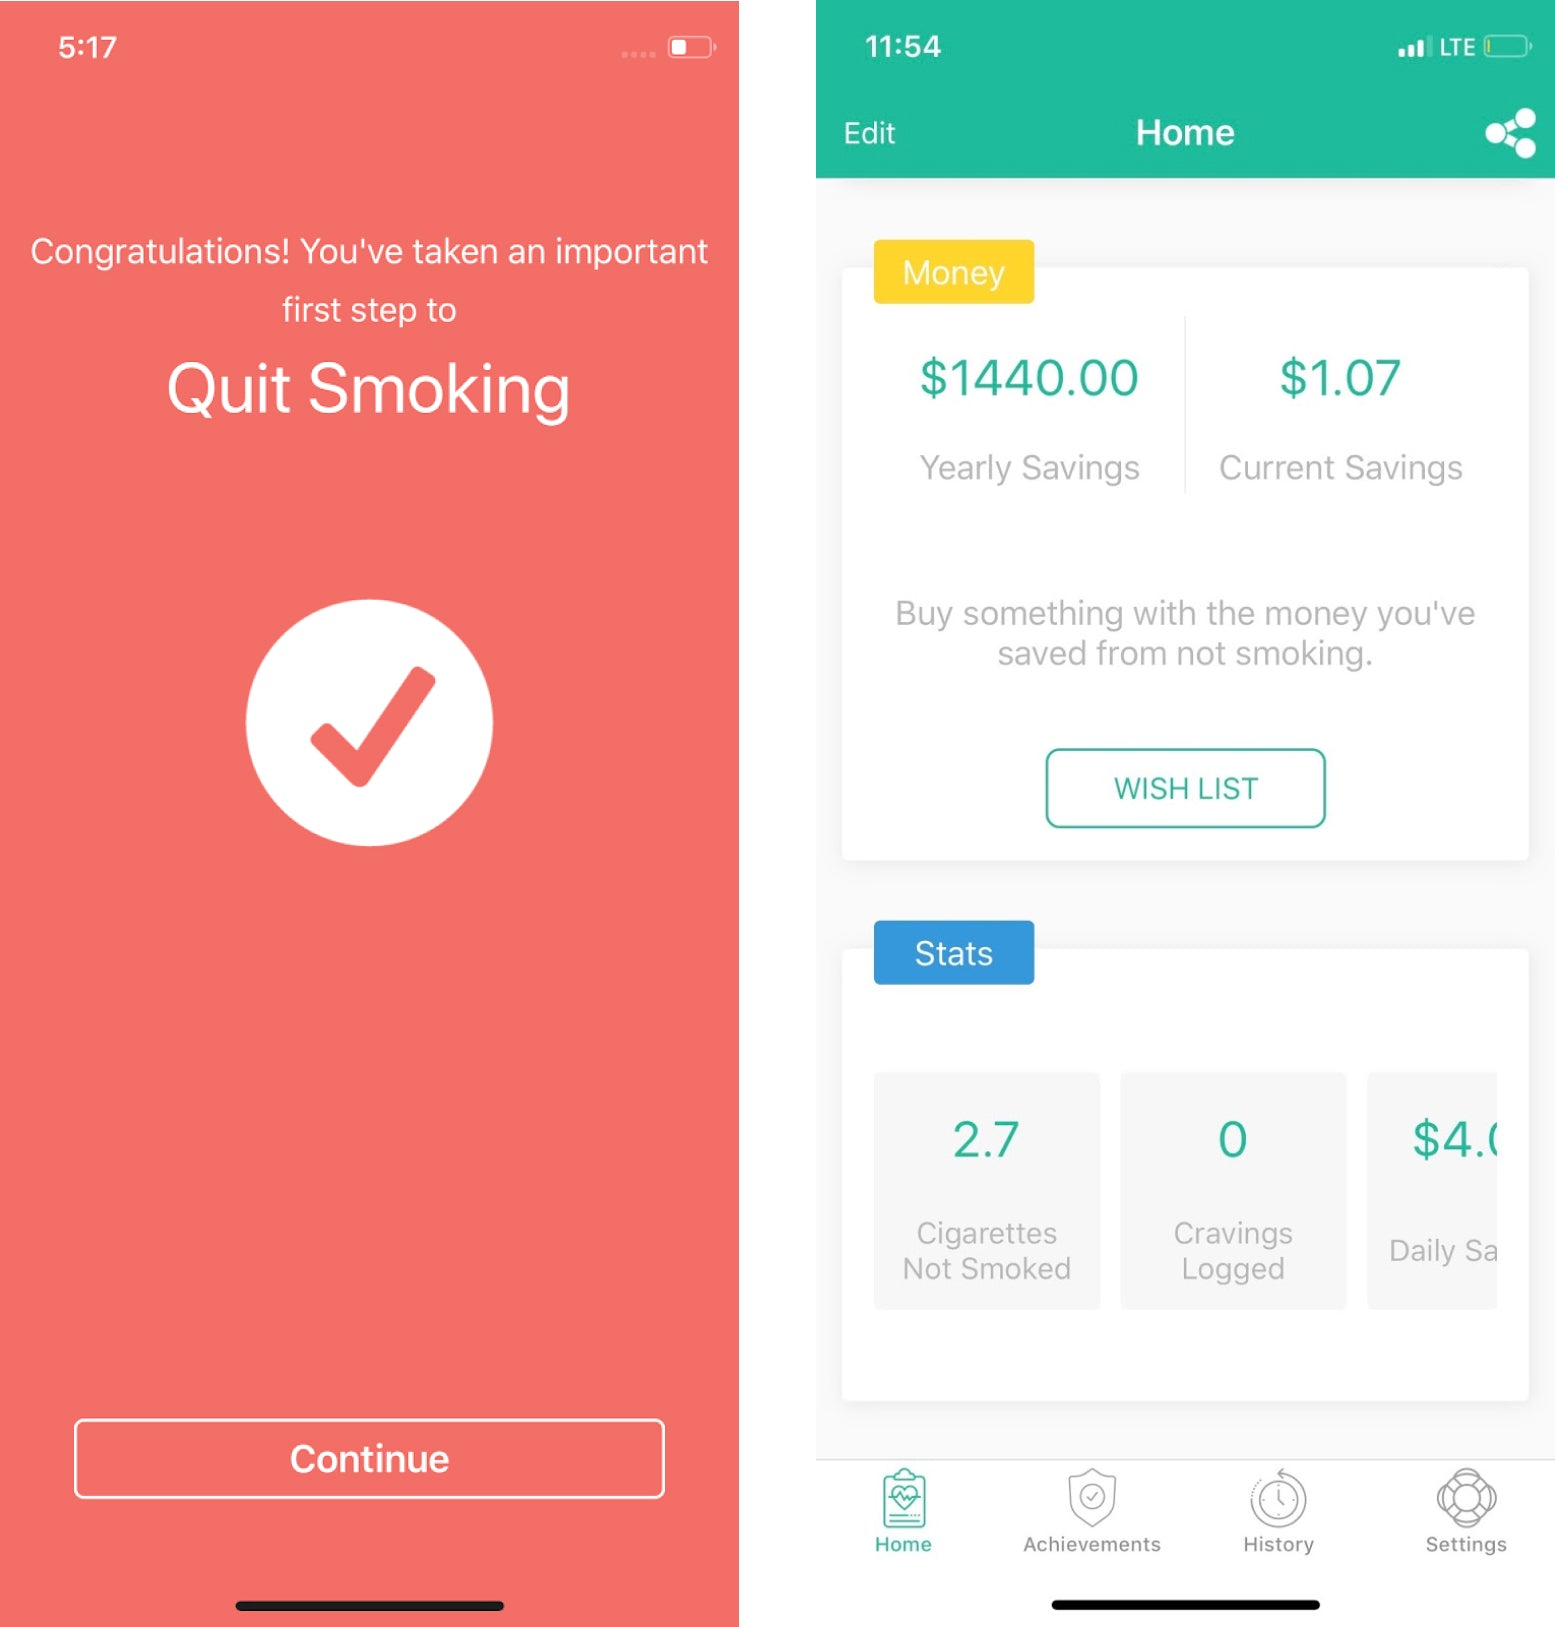 quit smoking now app - how to quit smoking with diabetes - diabetes and smoking - smoking and type 2 diabetes - smoking cessation diabetes